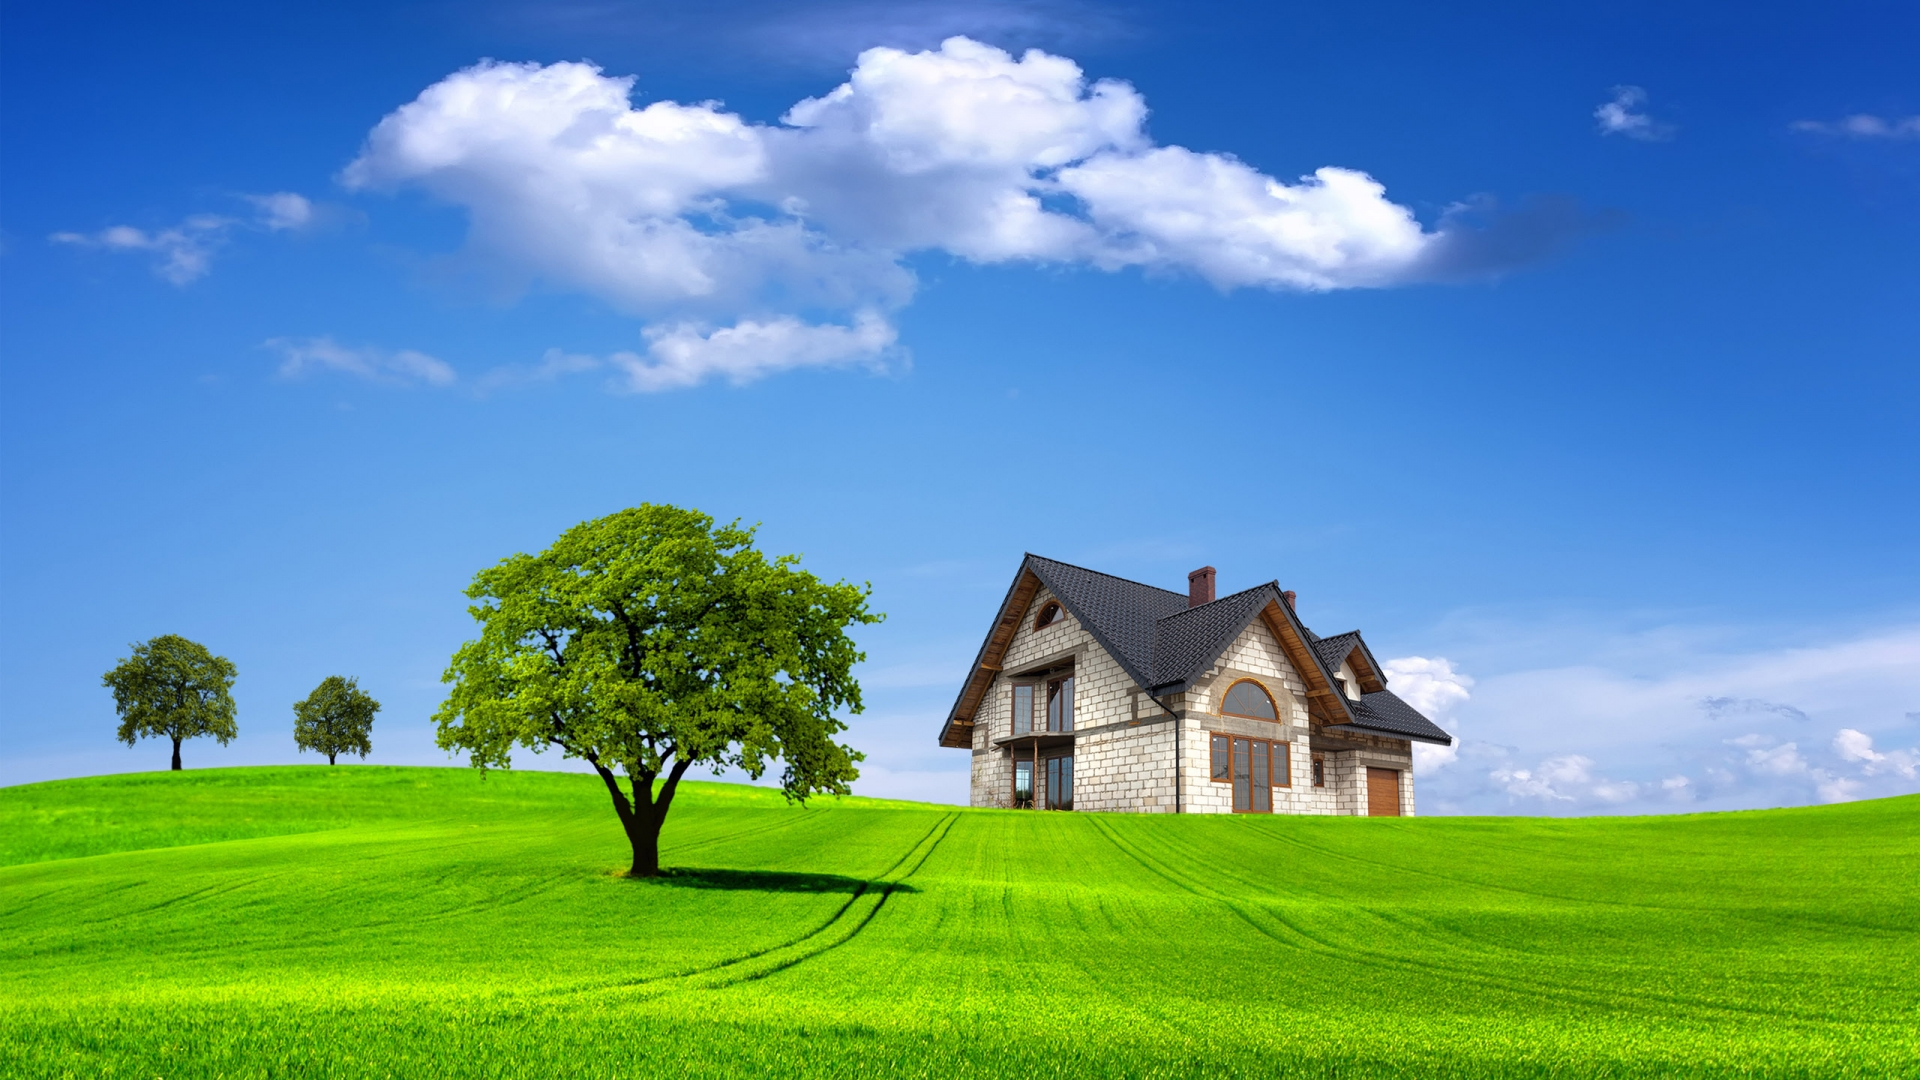 HD Wallpapers House